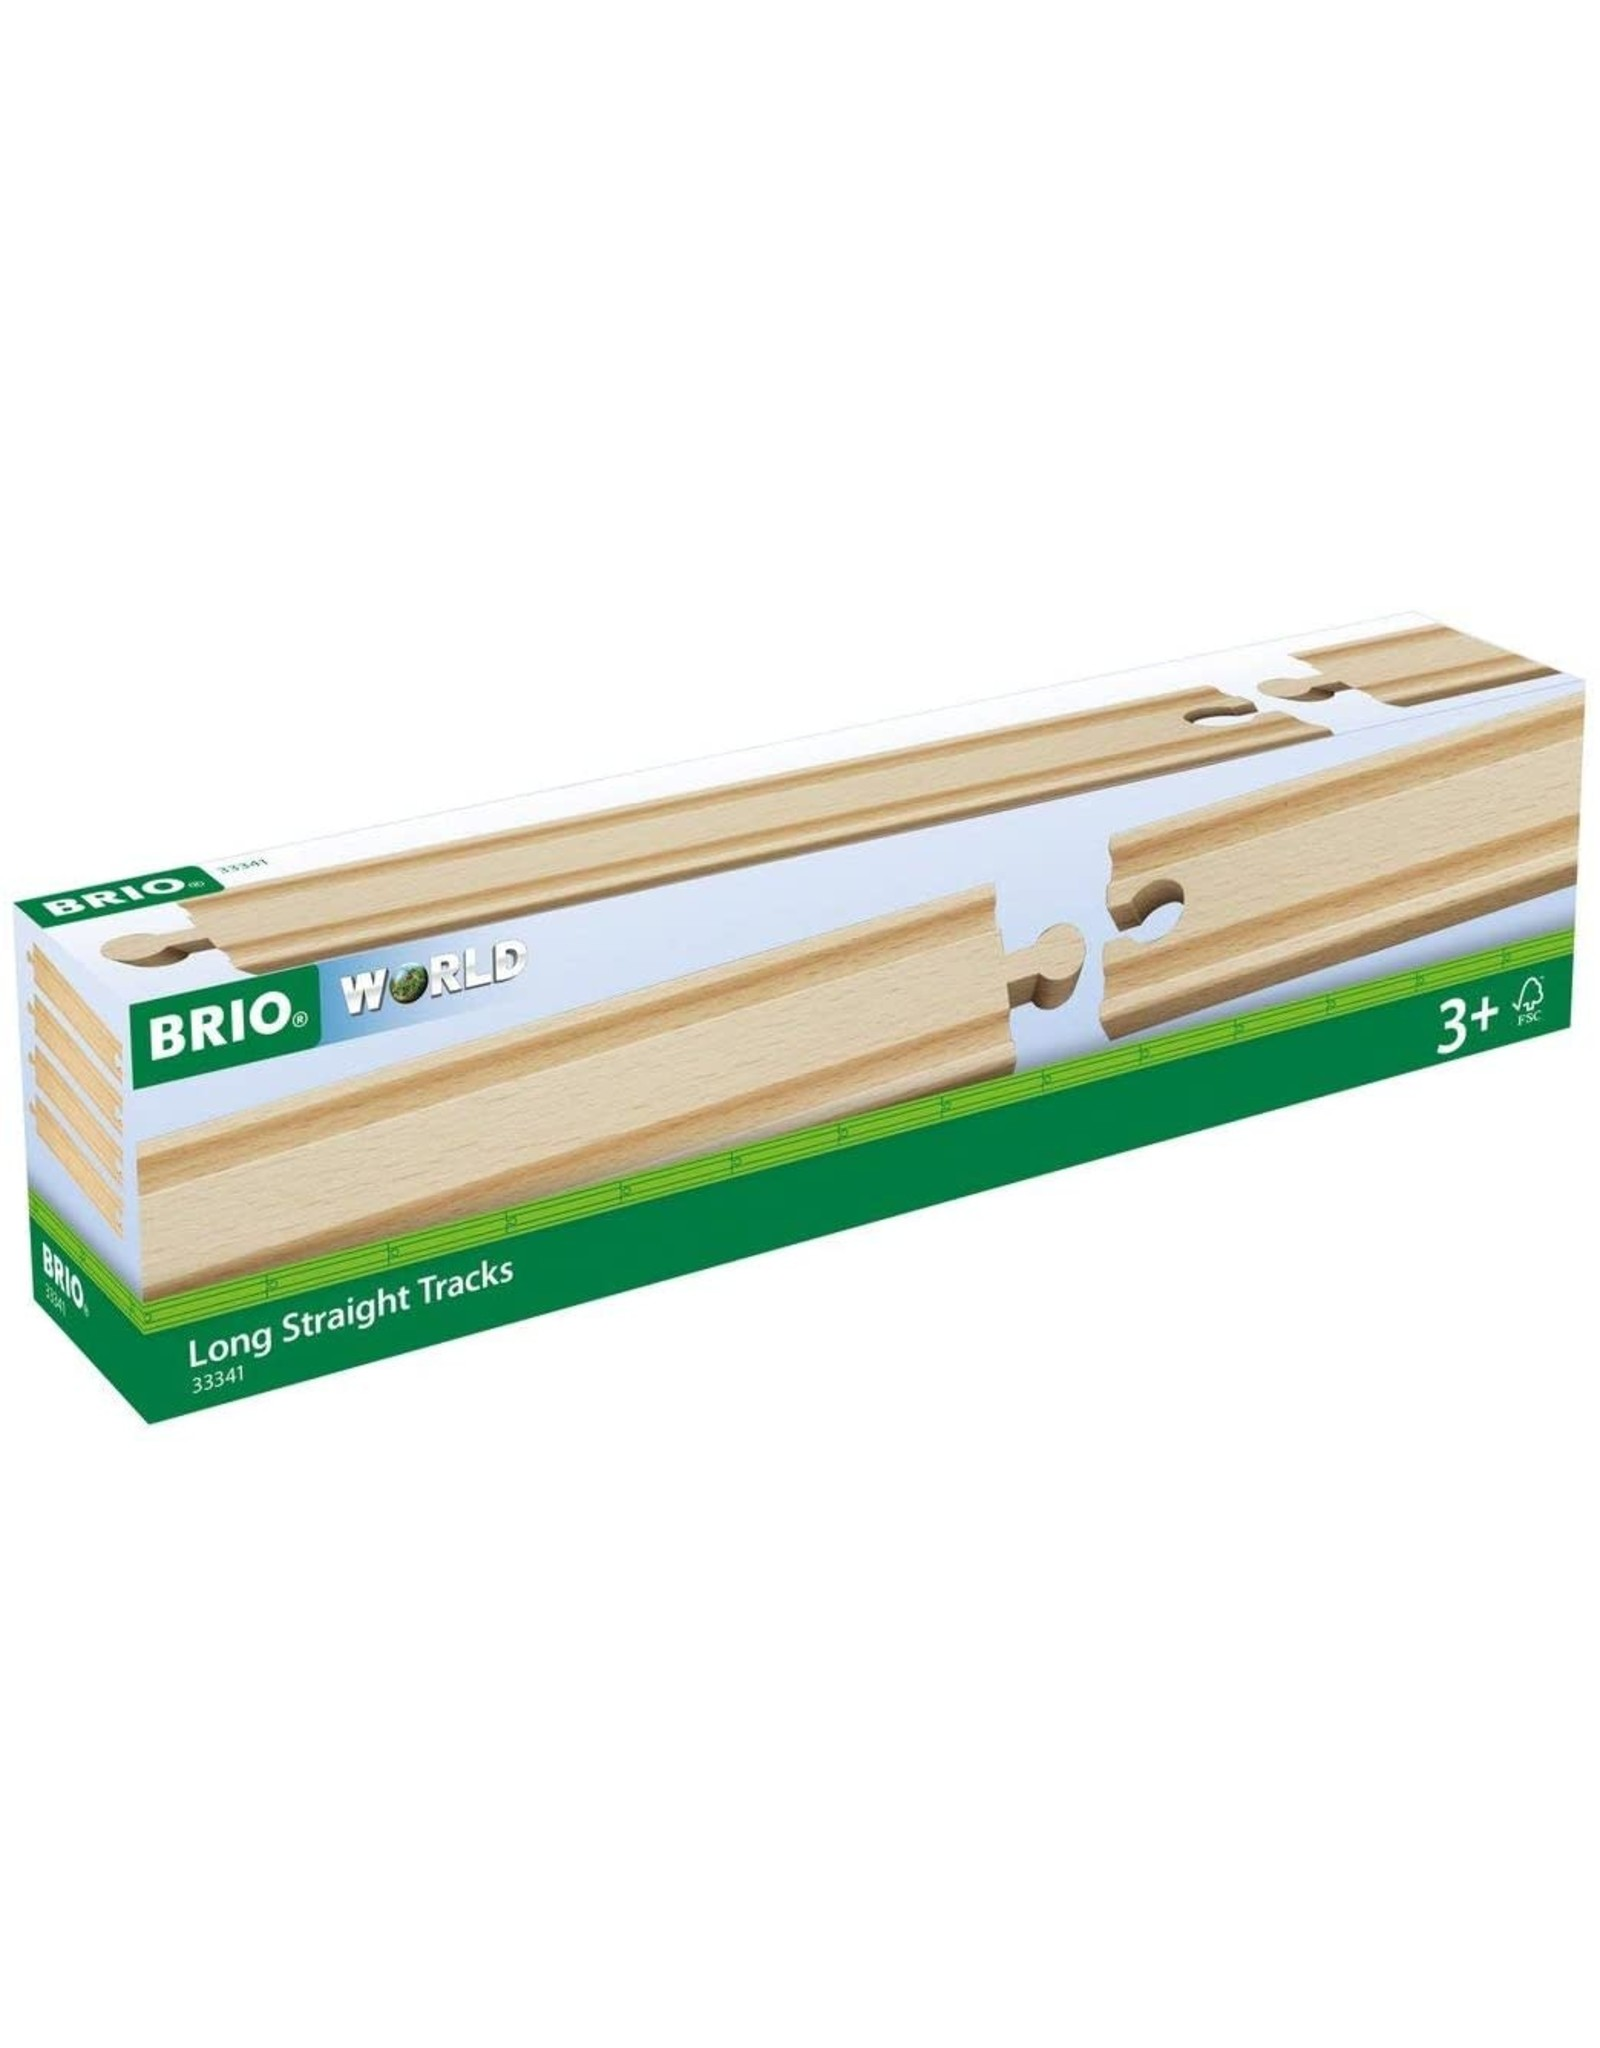 Brio Long Straight Tracks